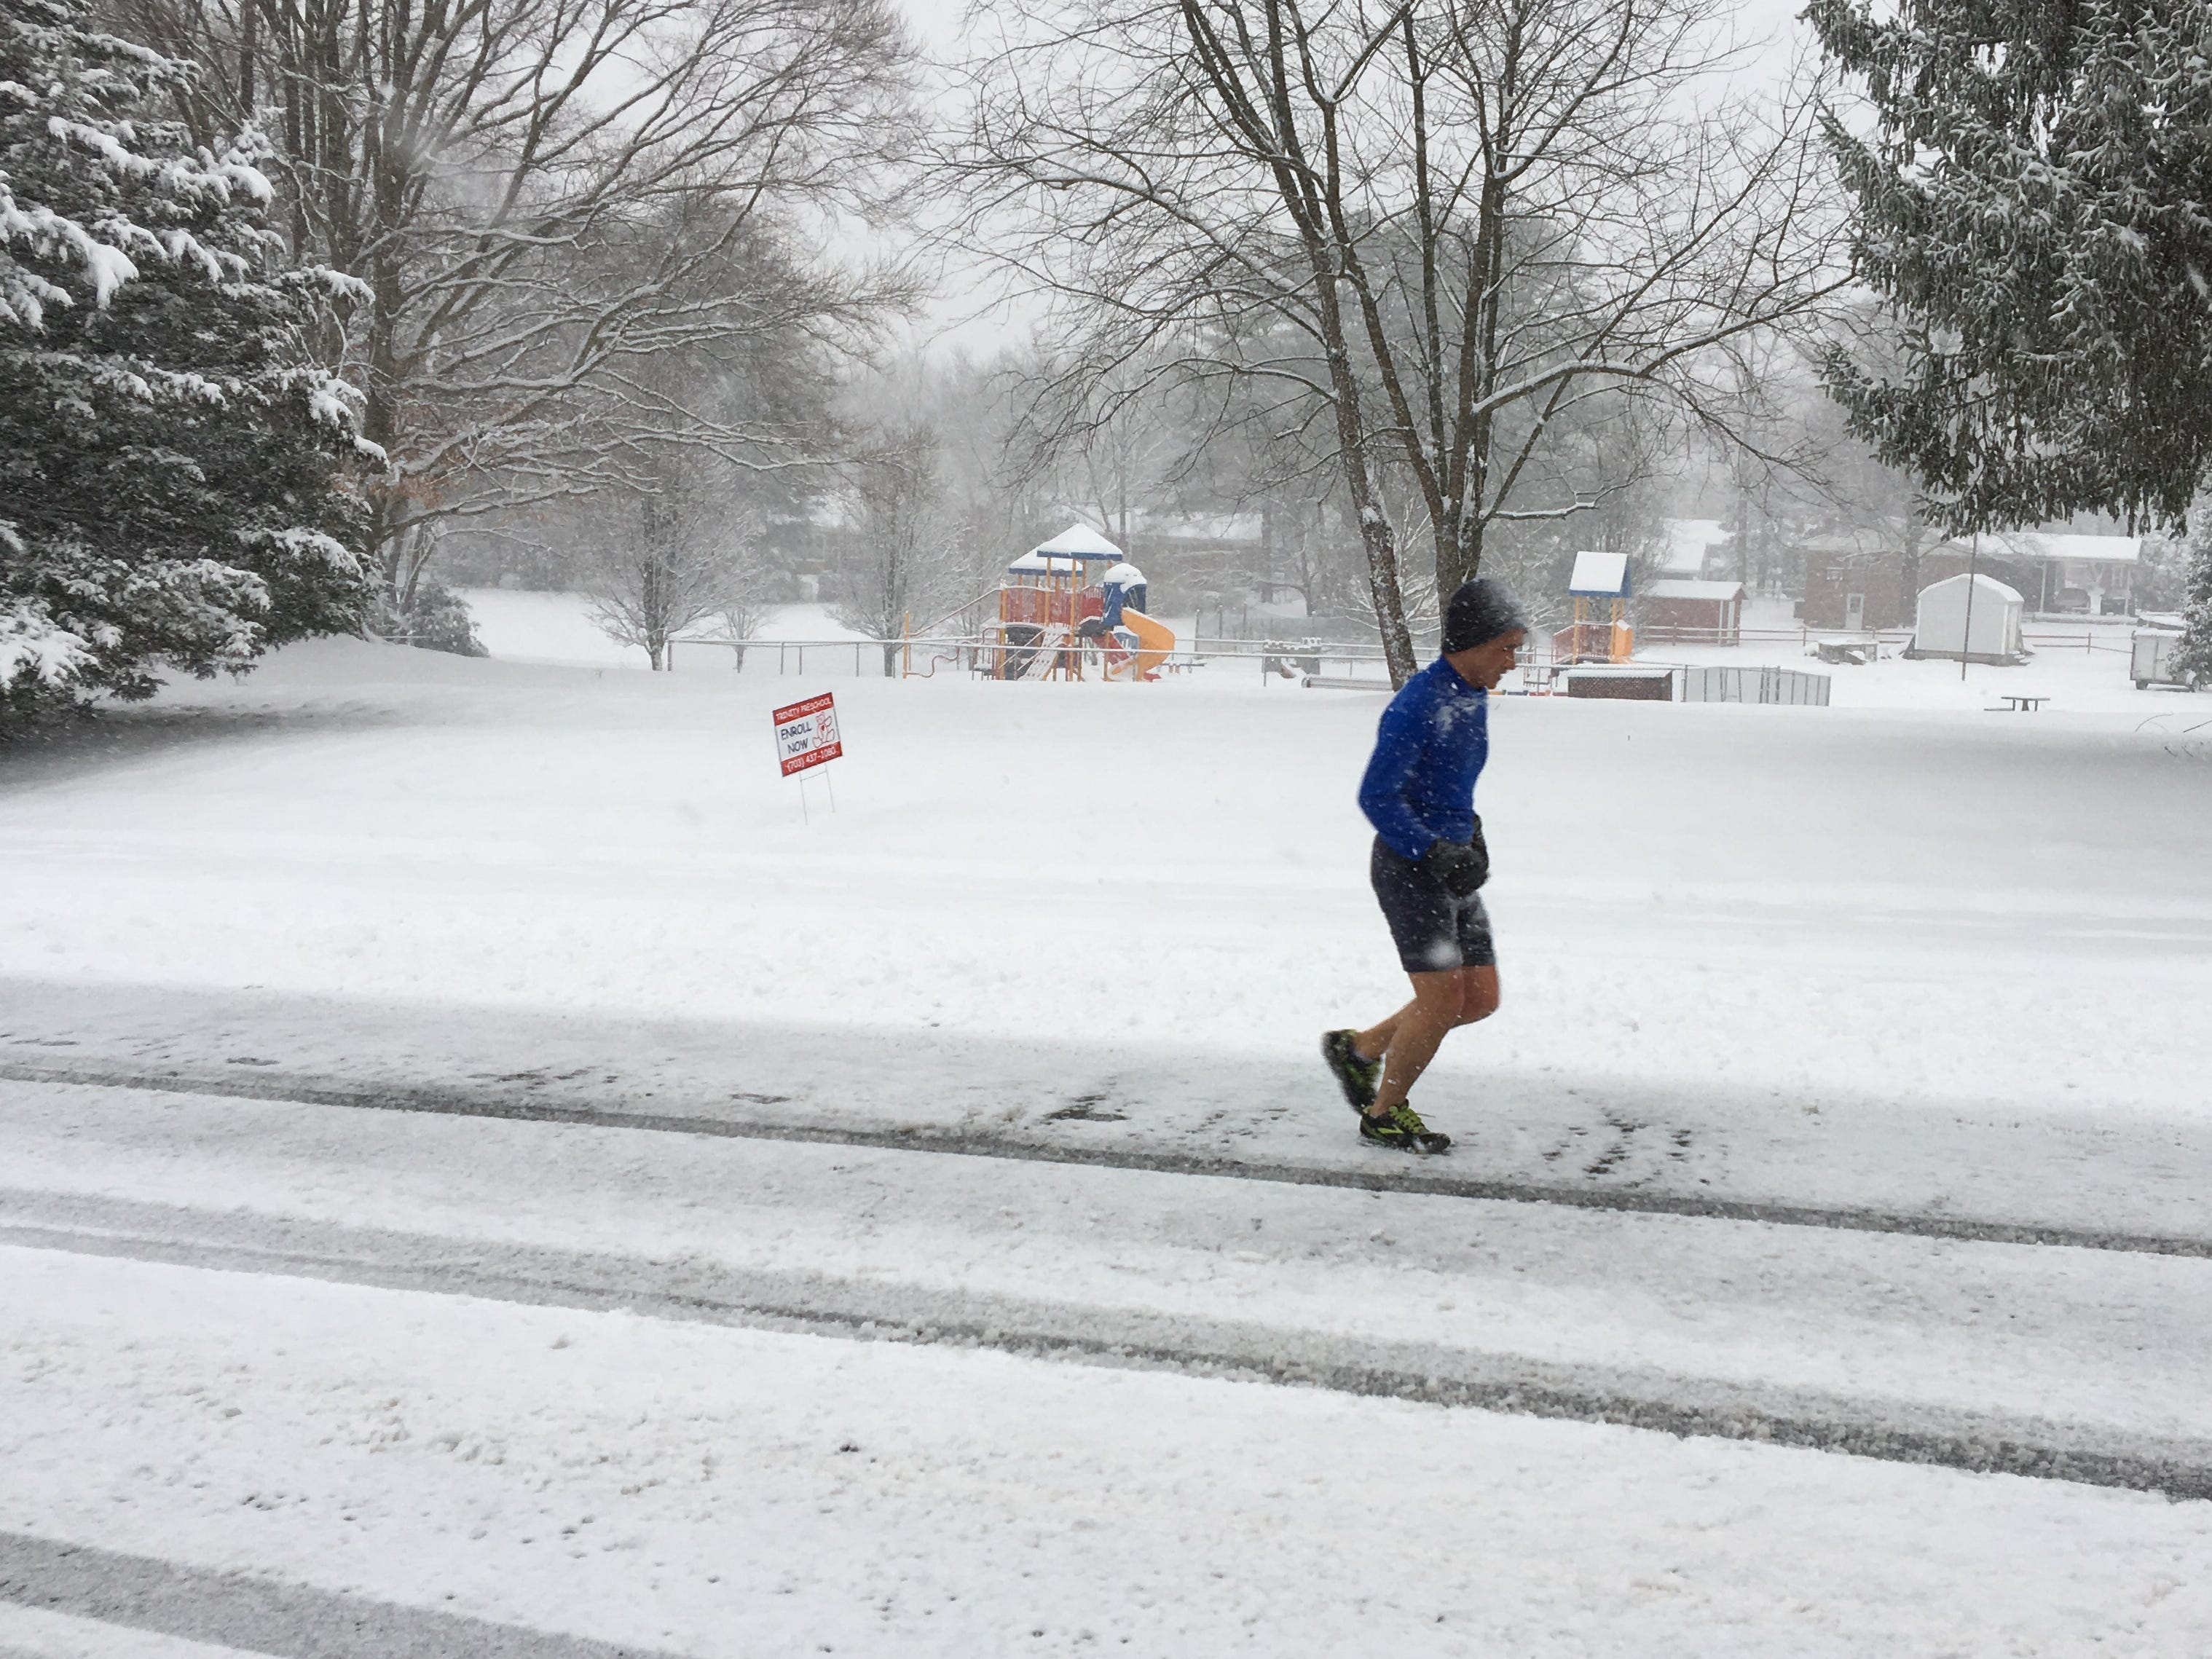 This diehard runner is out during a snow storm in Herndon, Va Feb. 20, 2019 as several inches of snow are predicted for the area around the metro Washington, DC, area.